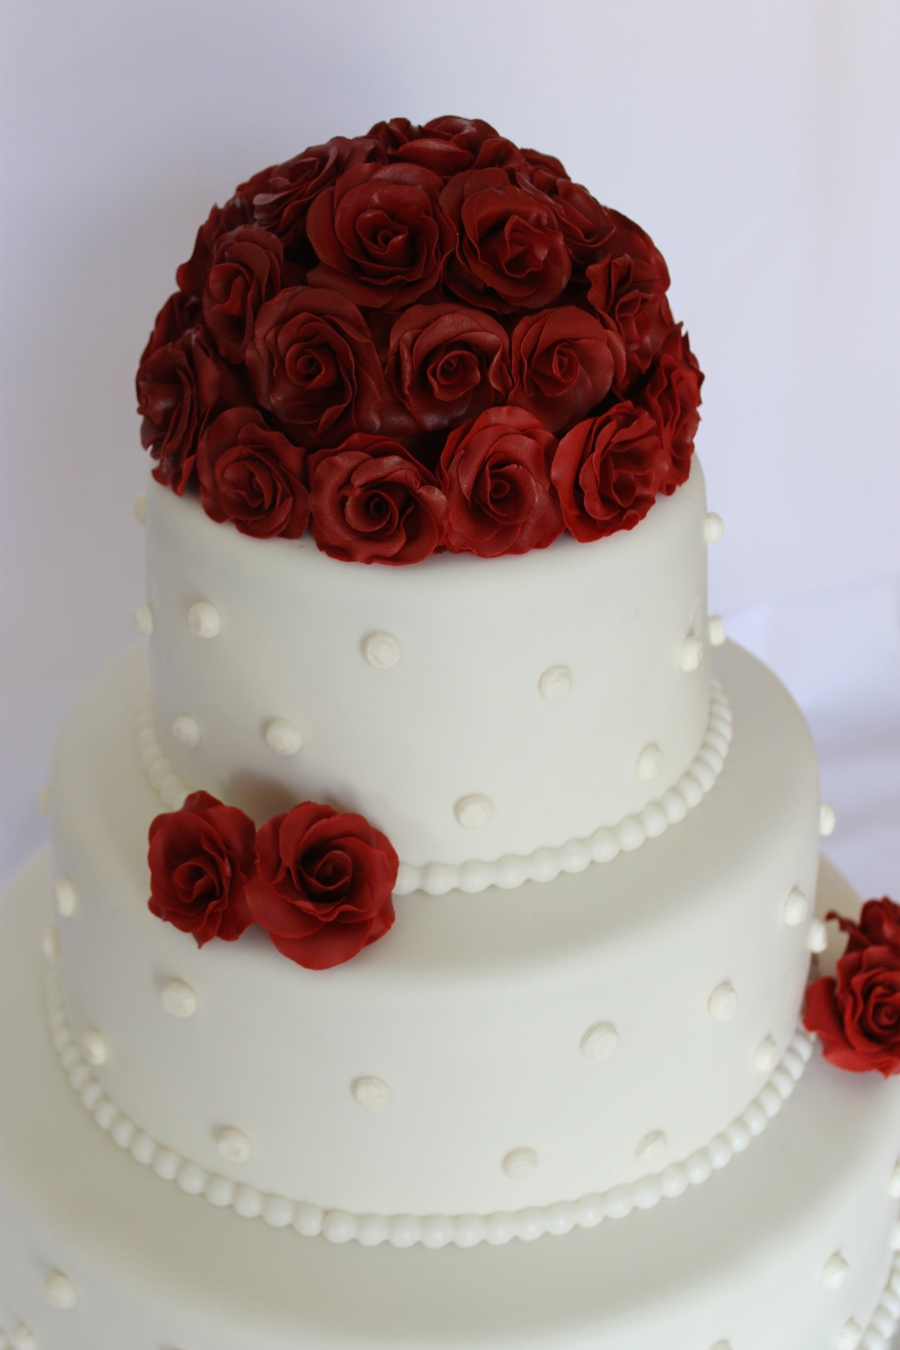 My First Wedding Cake Red Roses With Ball Border And Some